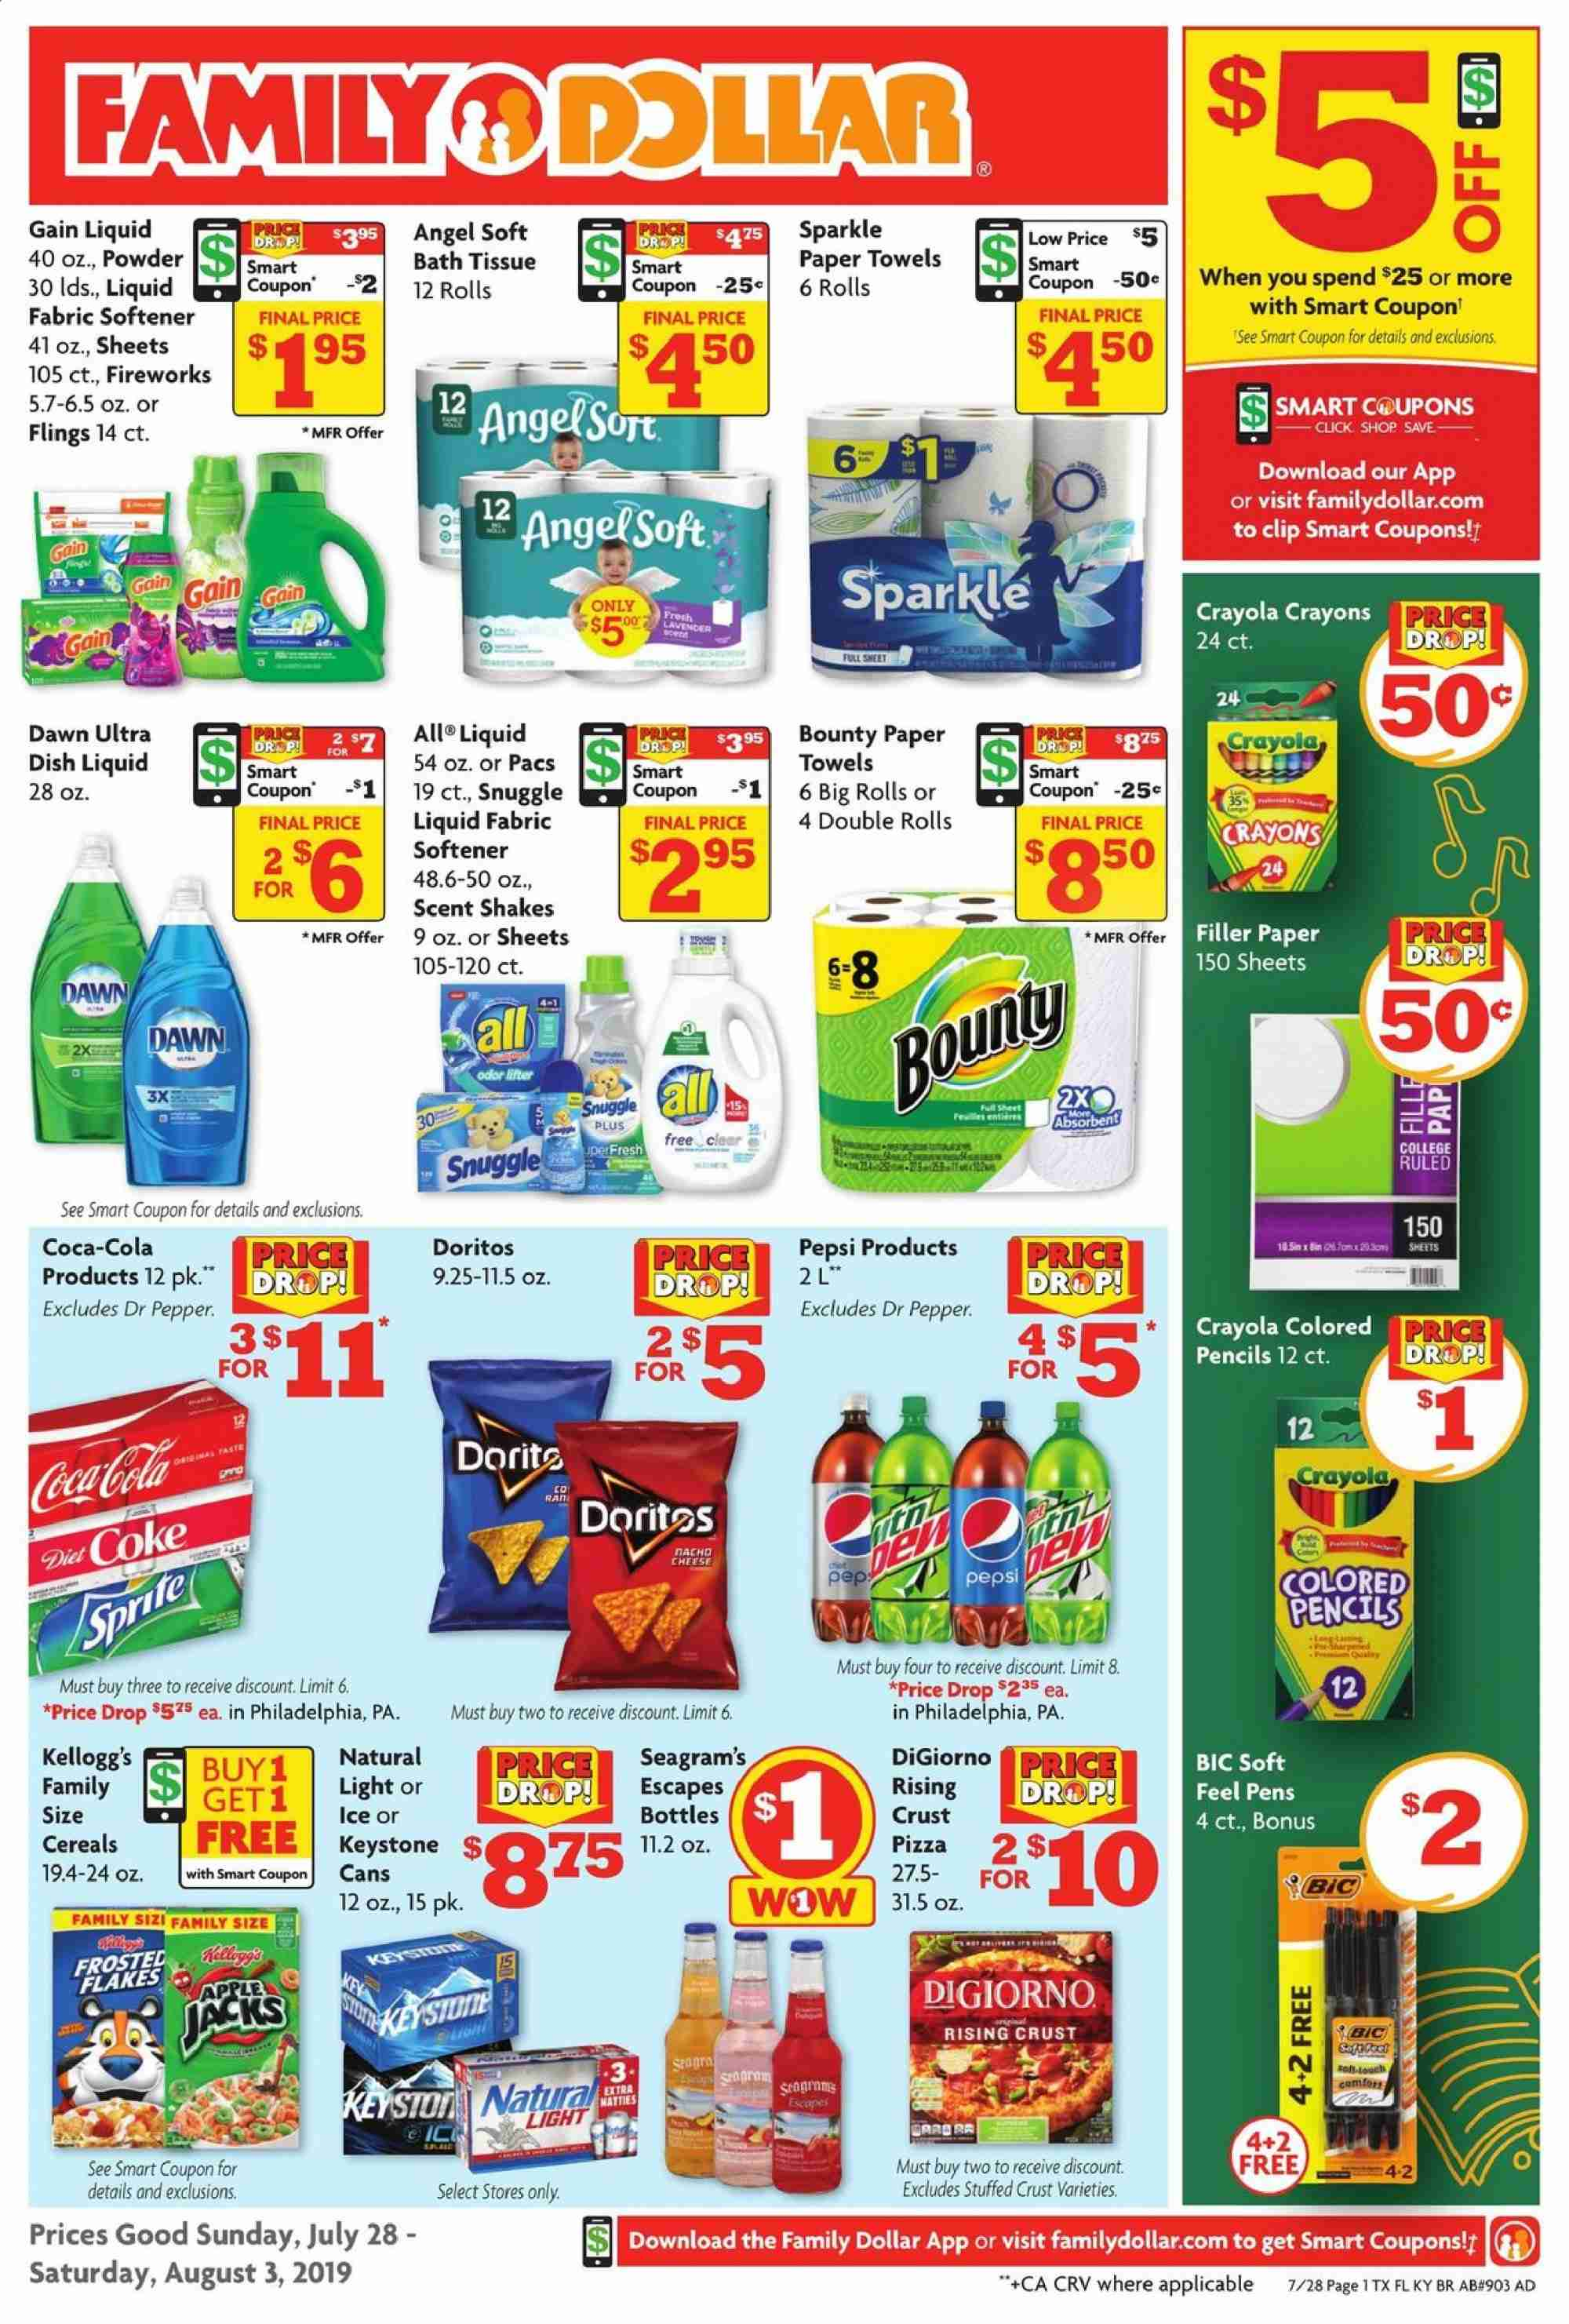 Family Dollar Flyer - 07.28.2019 - 08.03.2019 - Sales products - Apple, pizza, Philadelphia, cheese, shakes, Bounty, Kellogg's, Doritos, cereals, Coca-Cola, Pepsi, Dr. Pepper, Diet Coke, Keystone, bath tissue, kitchen towels, paper towels, Gain, Snuggle, fabric softener, dishwashing liquid, BIC, Crayola Crayons, pencil, sheet. Page 1.